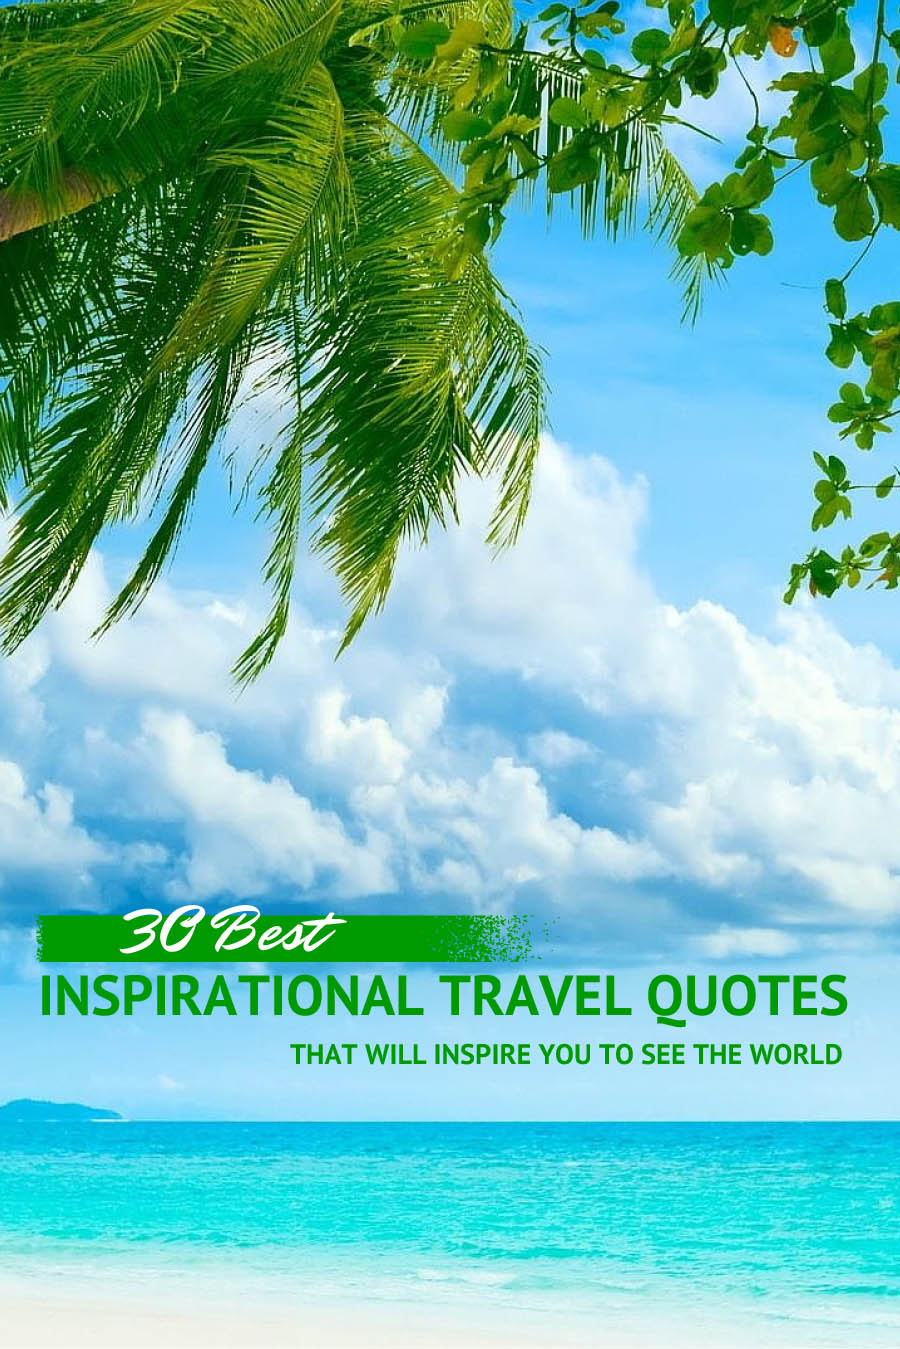 30 Best Inspirational Travel Quotes that will Inspire You to See the World